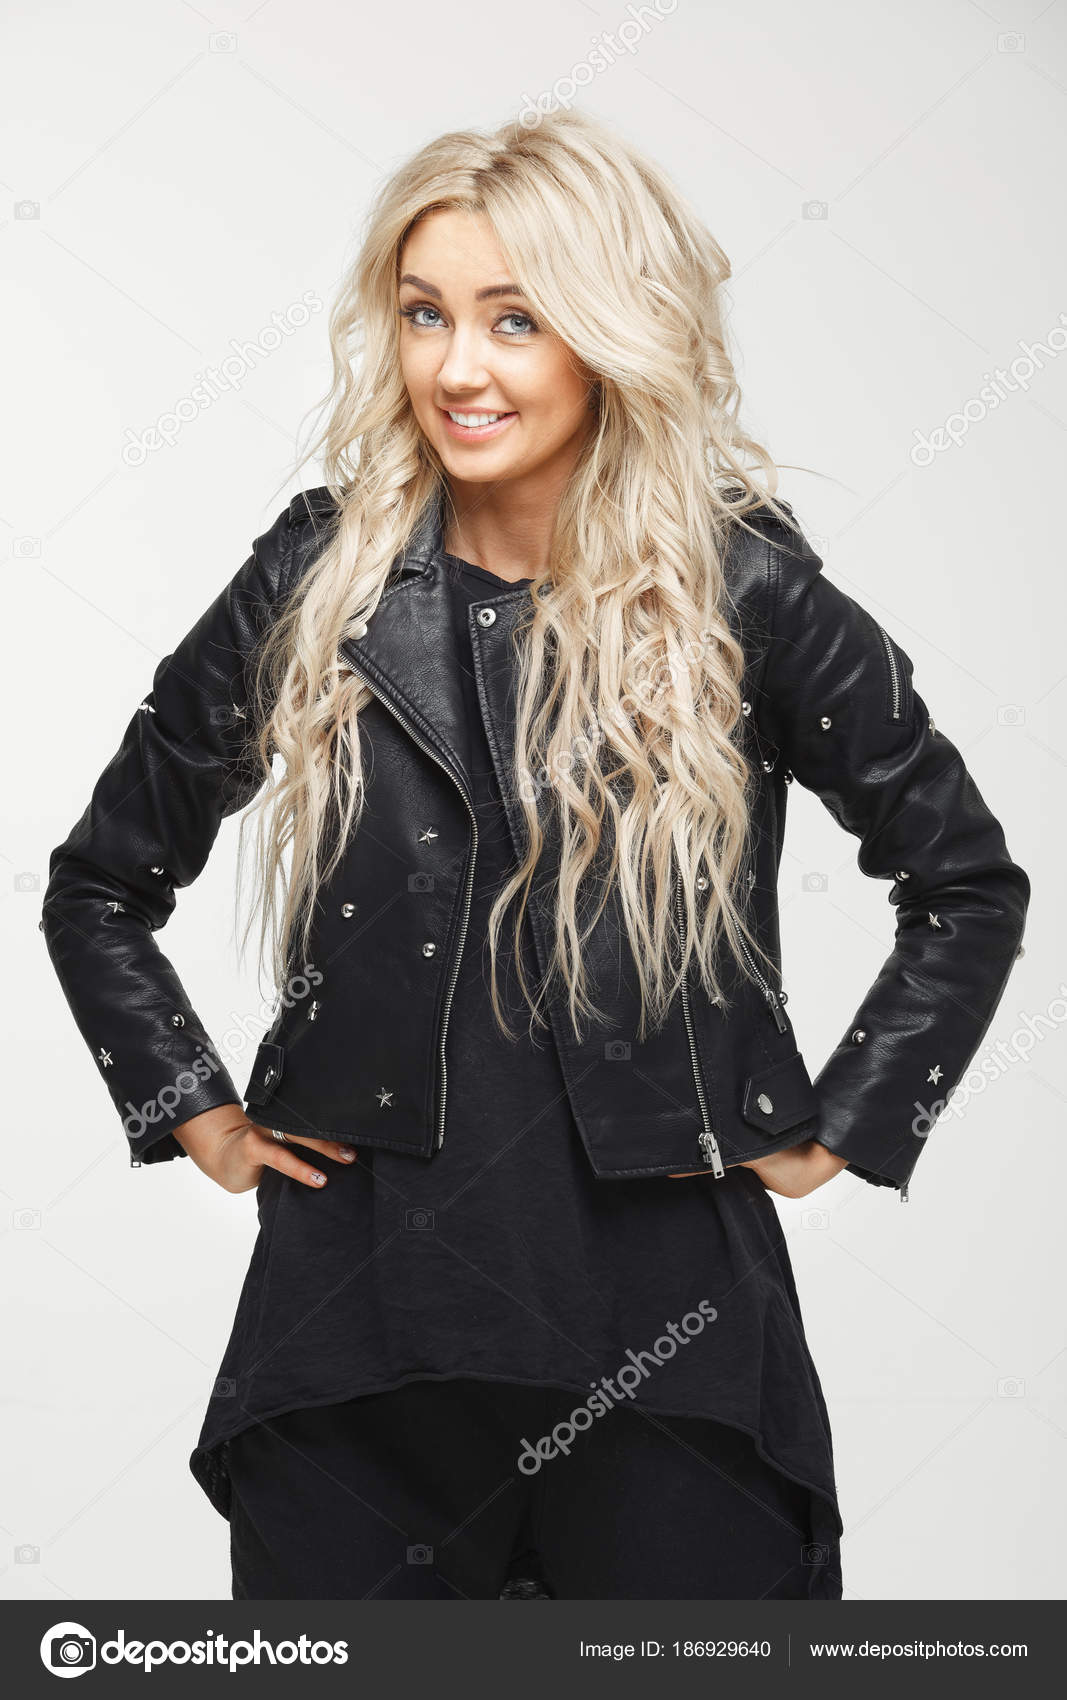 8cbda75257ce half-length portrait of smiling girl with beautiful hair in black ...